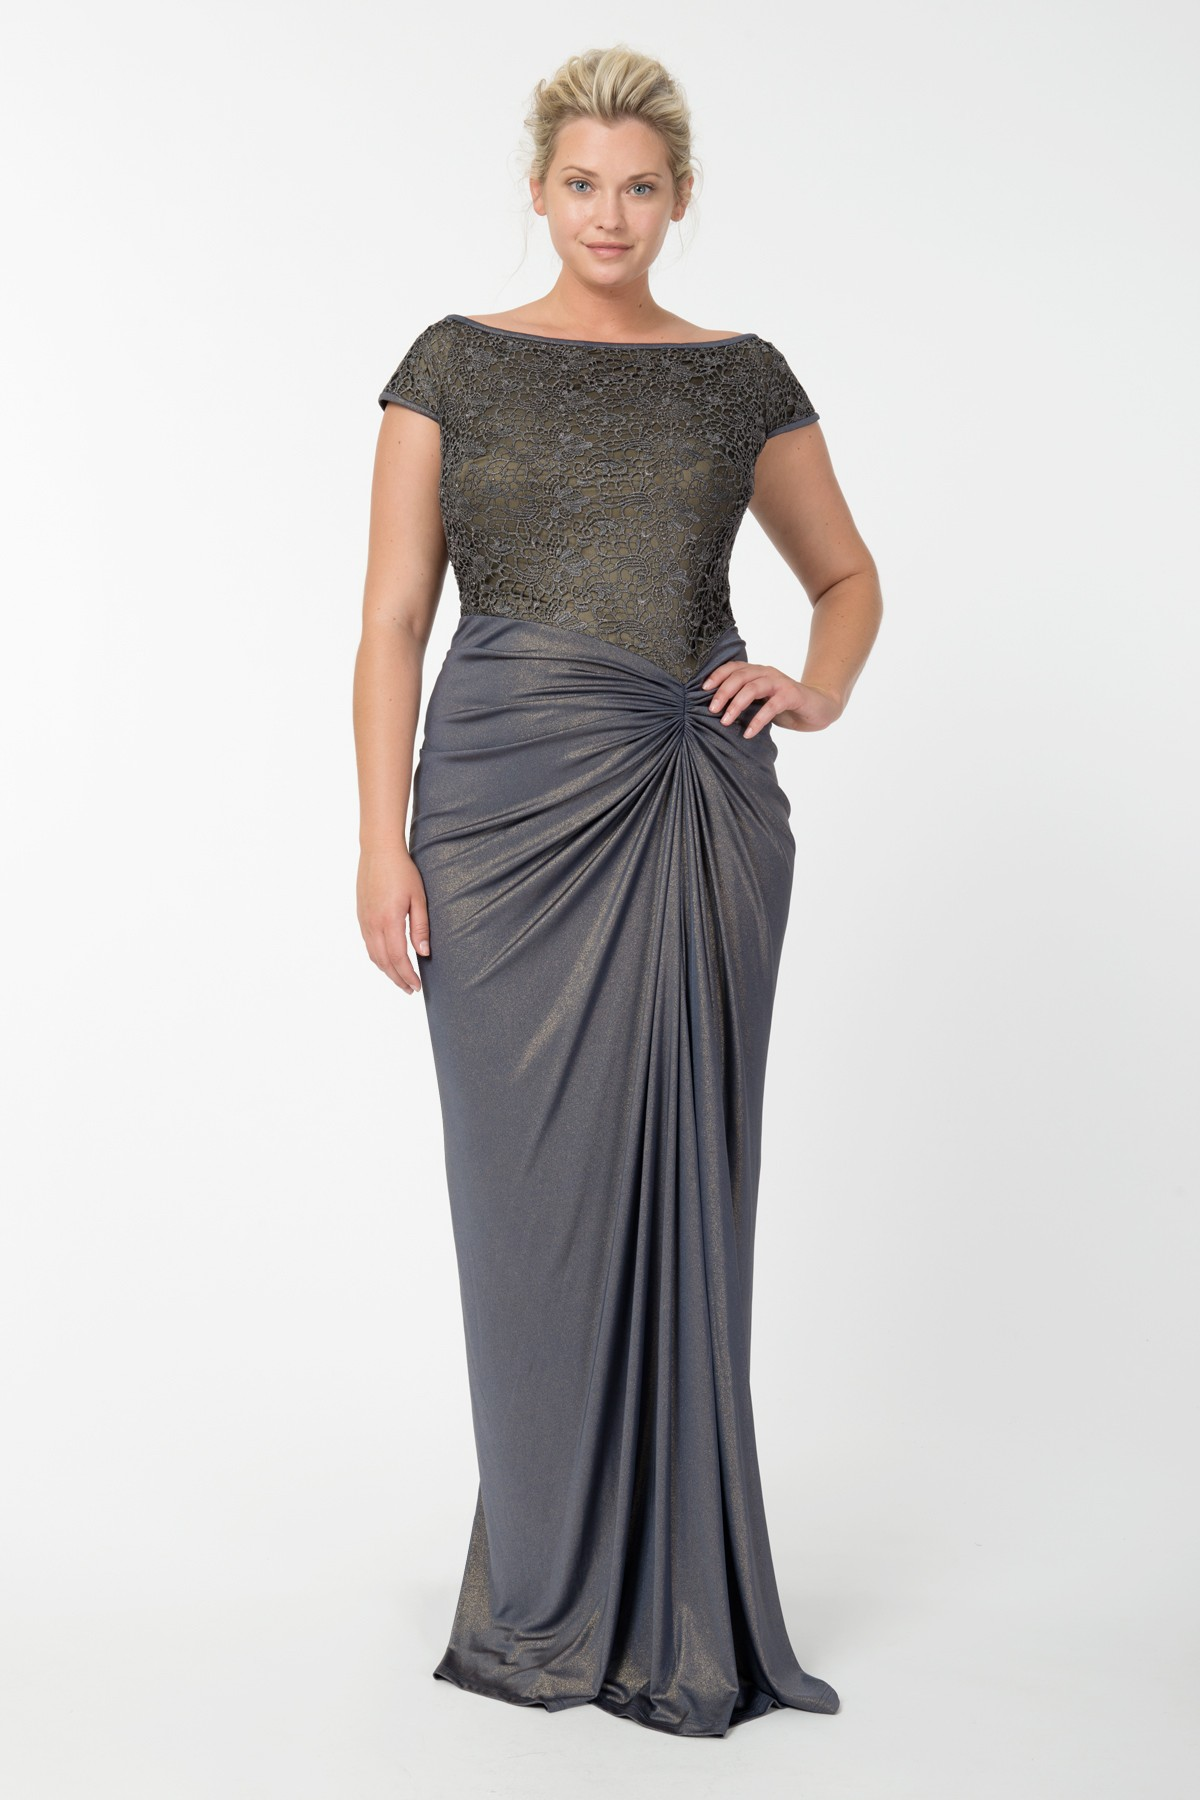 PLUS SIZE FORMAL DRESSES - Kapres Molene